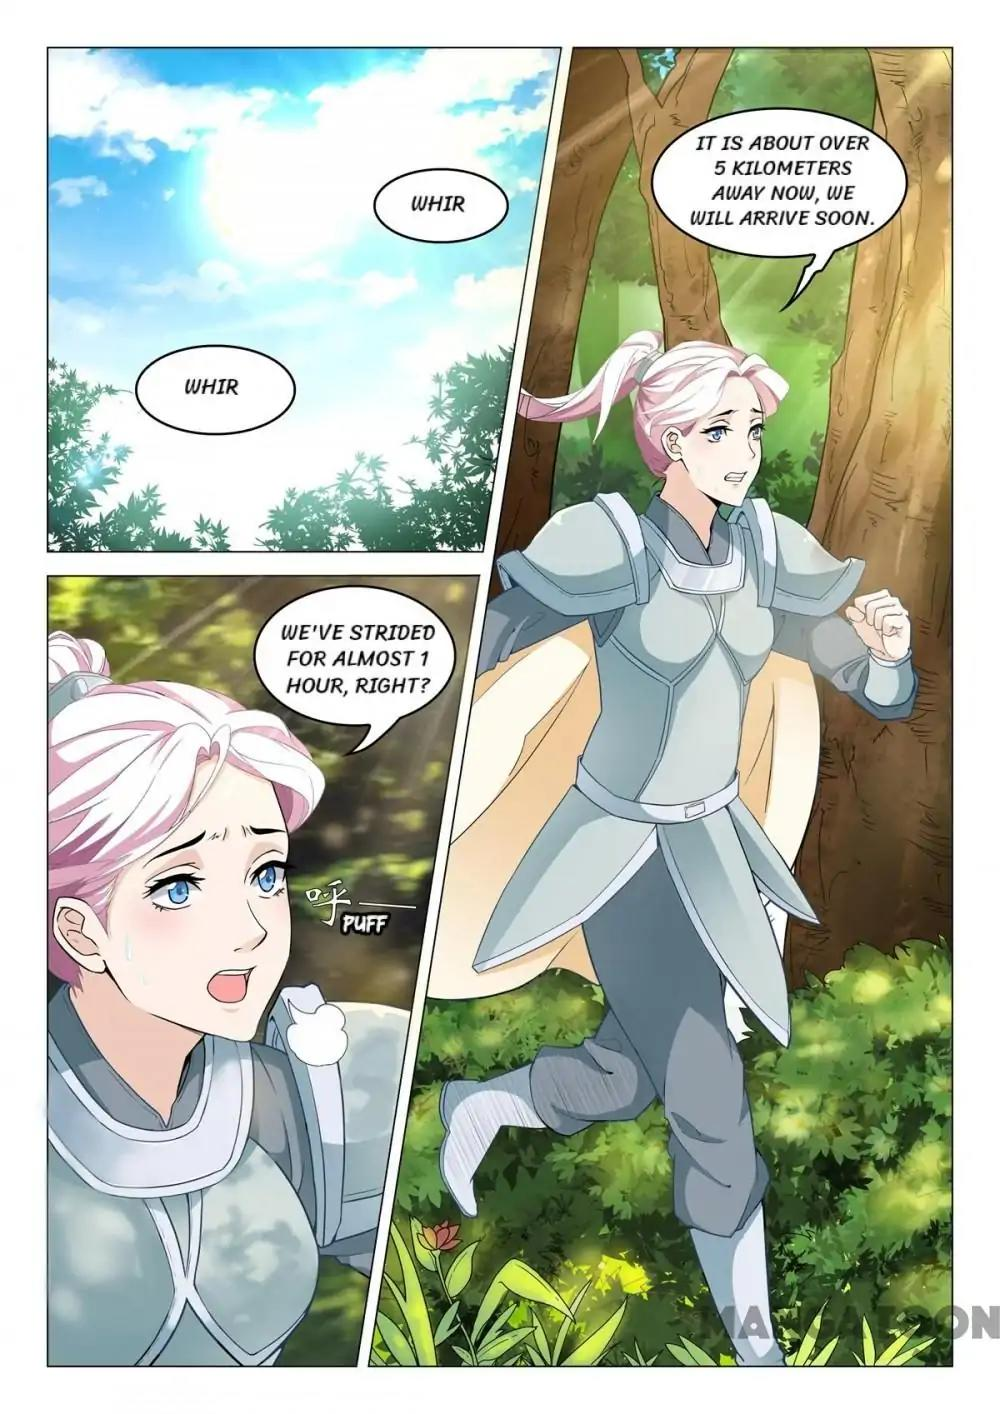 https://img2.nineanime.com/comics/pic2/10/25418/971453/ee9546012646a84ed8cd074d17ce2a8a.jpg Page 1